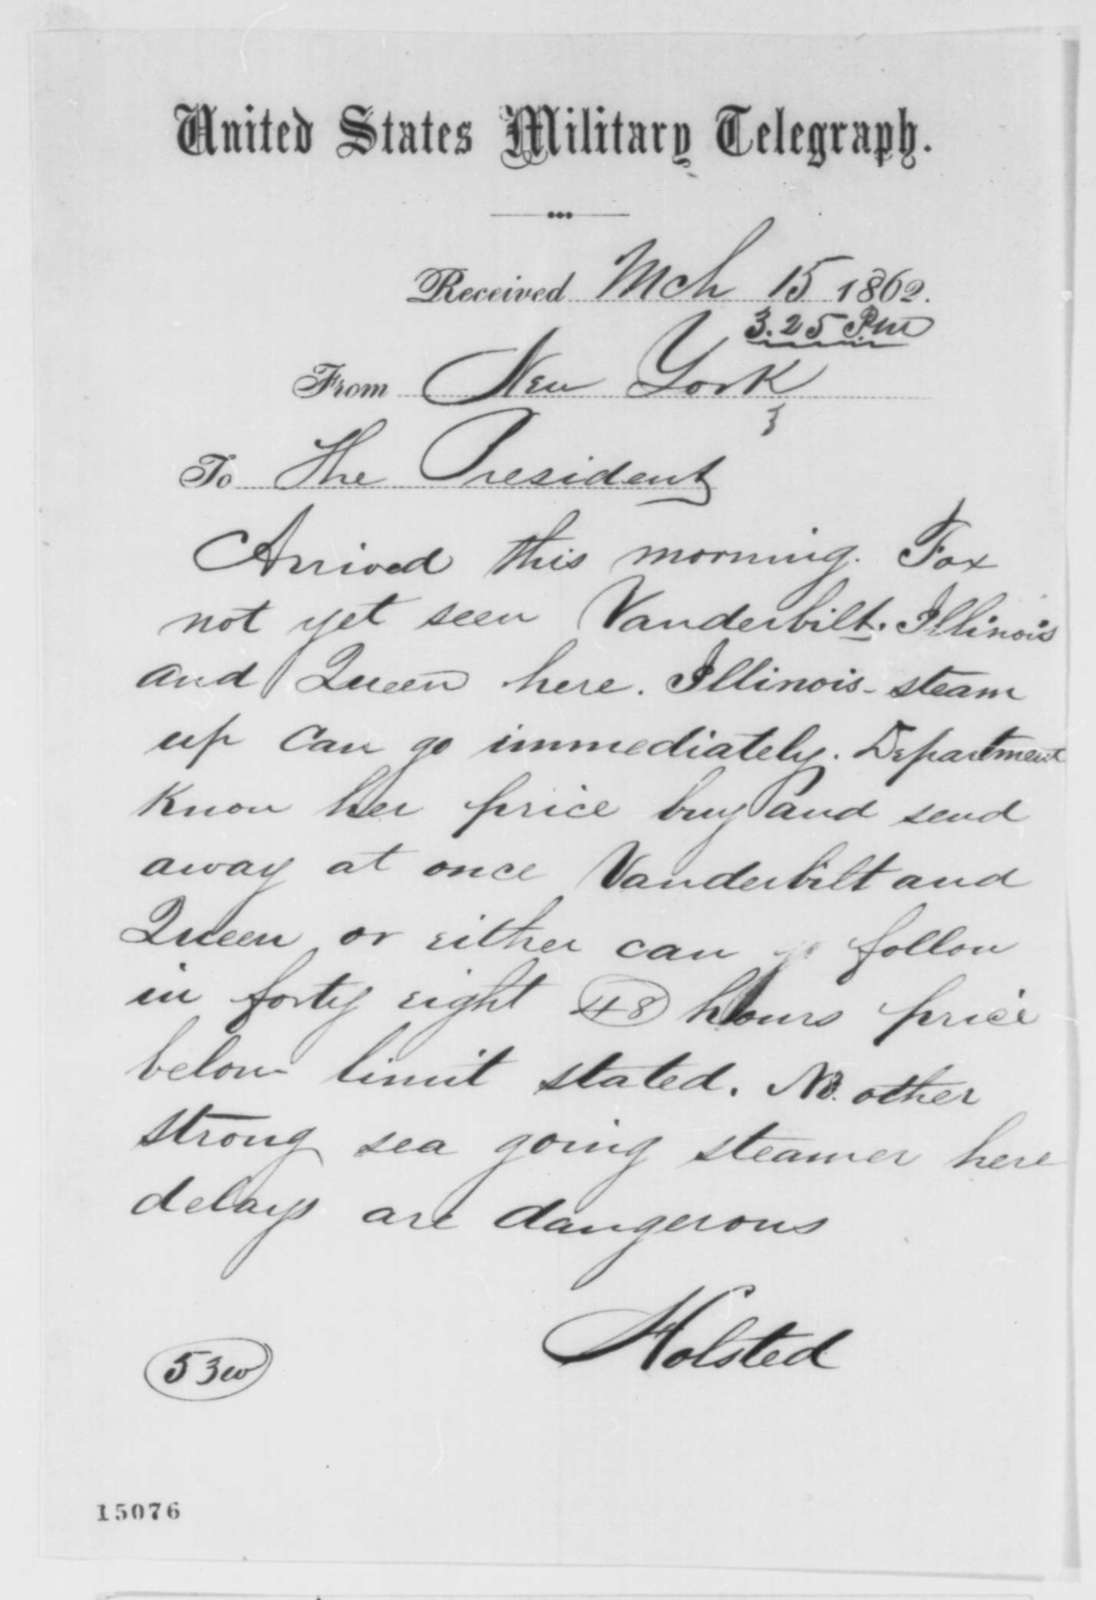 Richard Halsted to Abraham Lincoln, Saturday, March 15, 1862  (Telegram regarding vessels in New York)